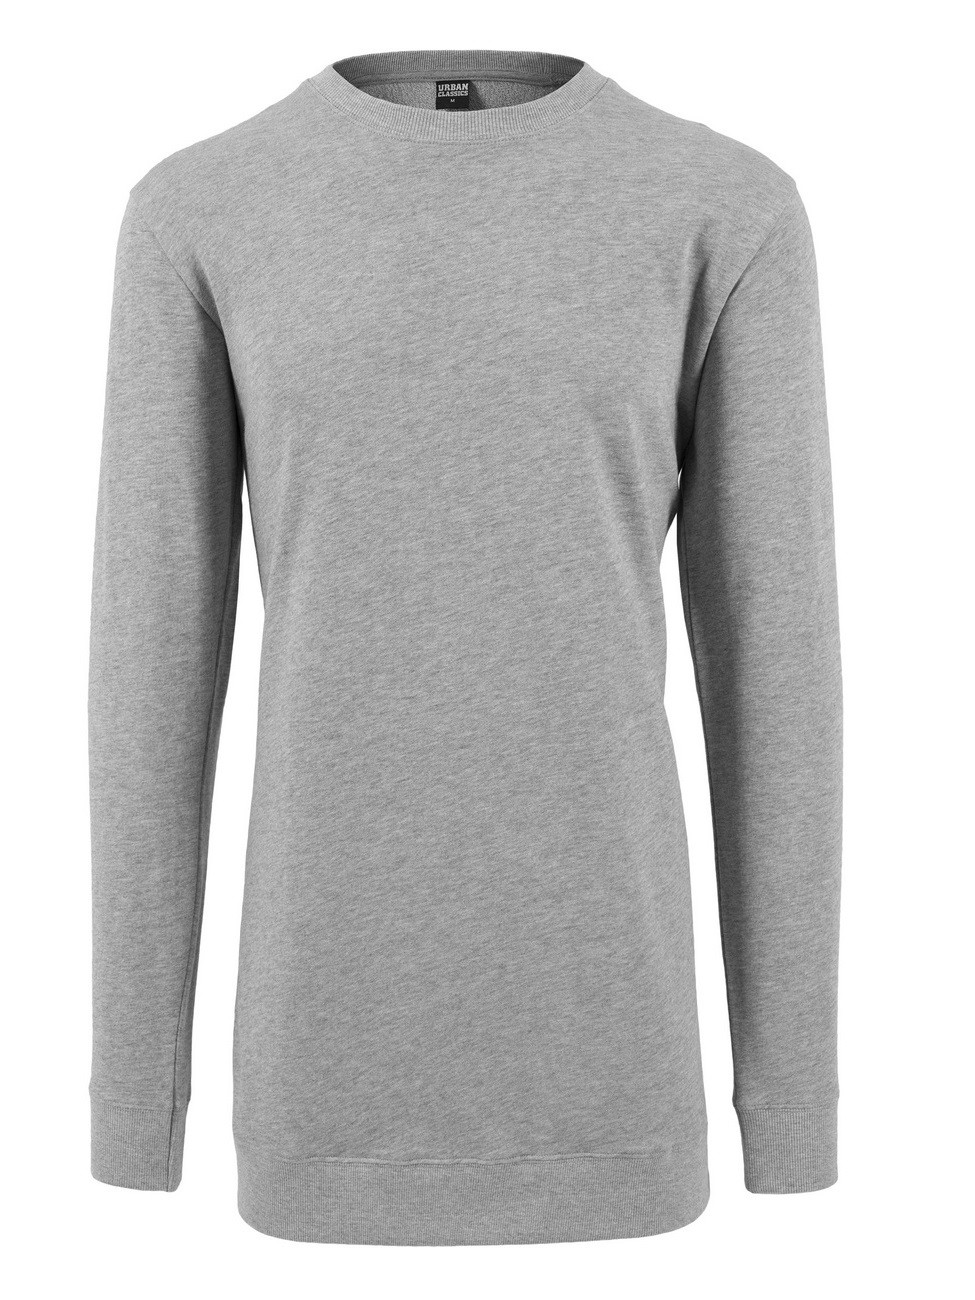 urban-classics-herren-sweater-long-light-fleece-crewneck